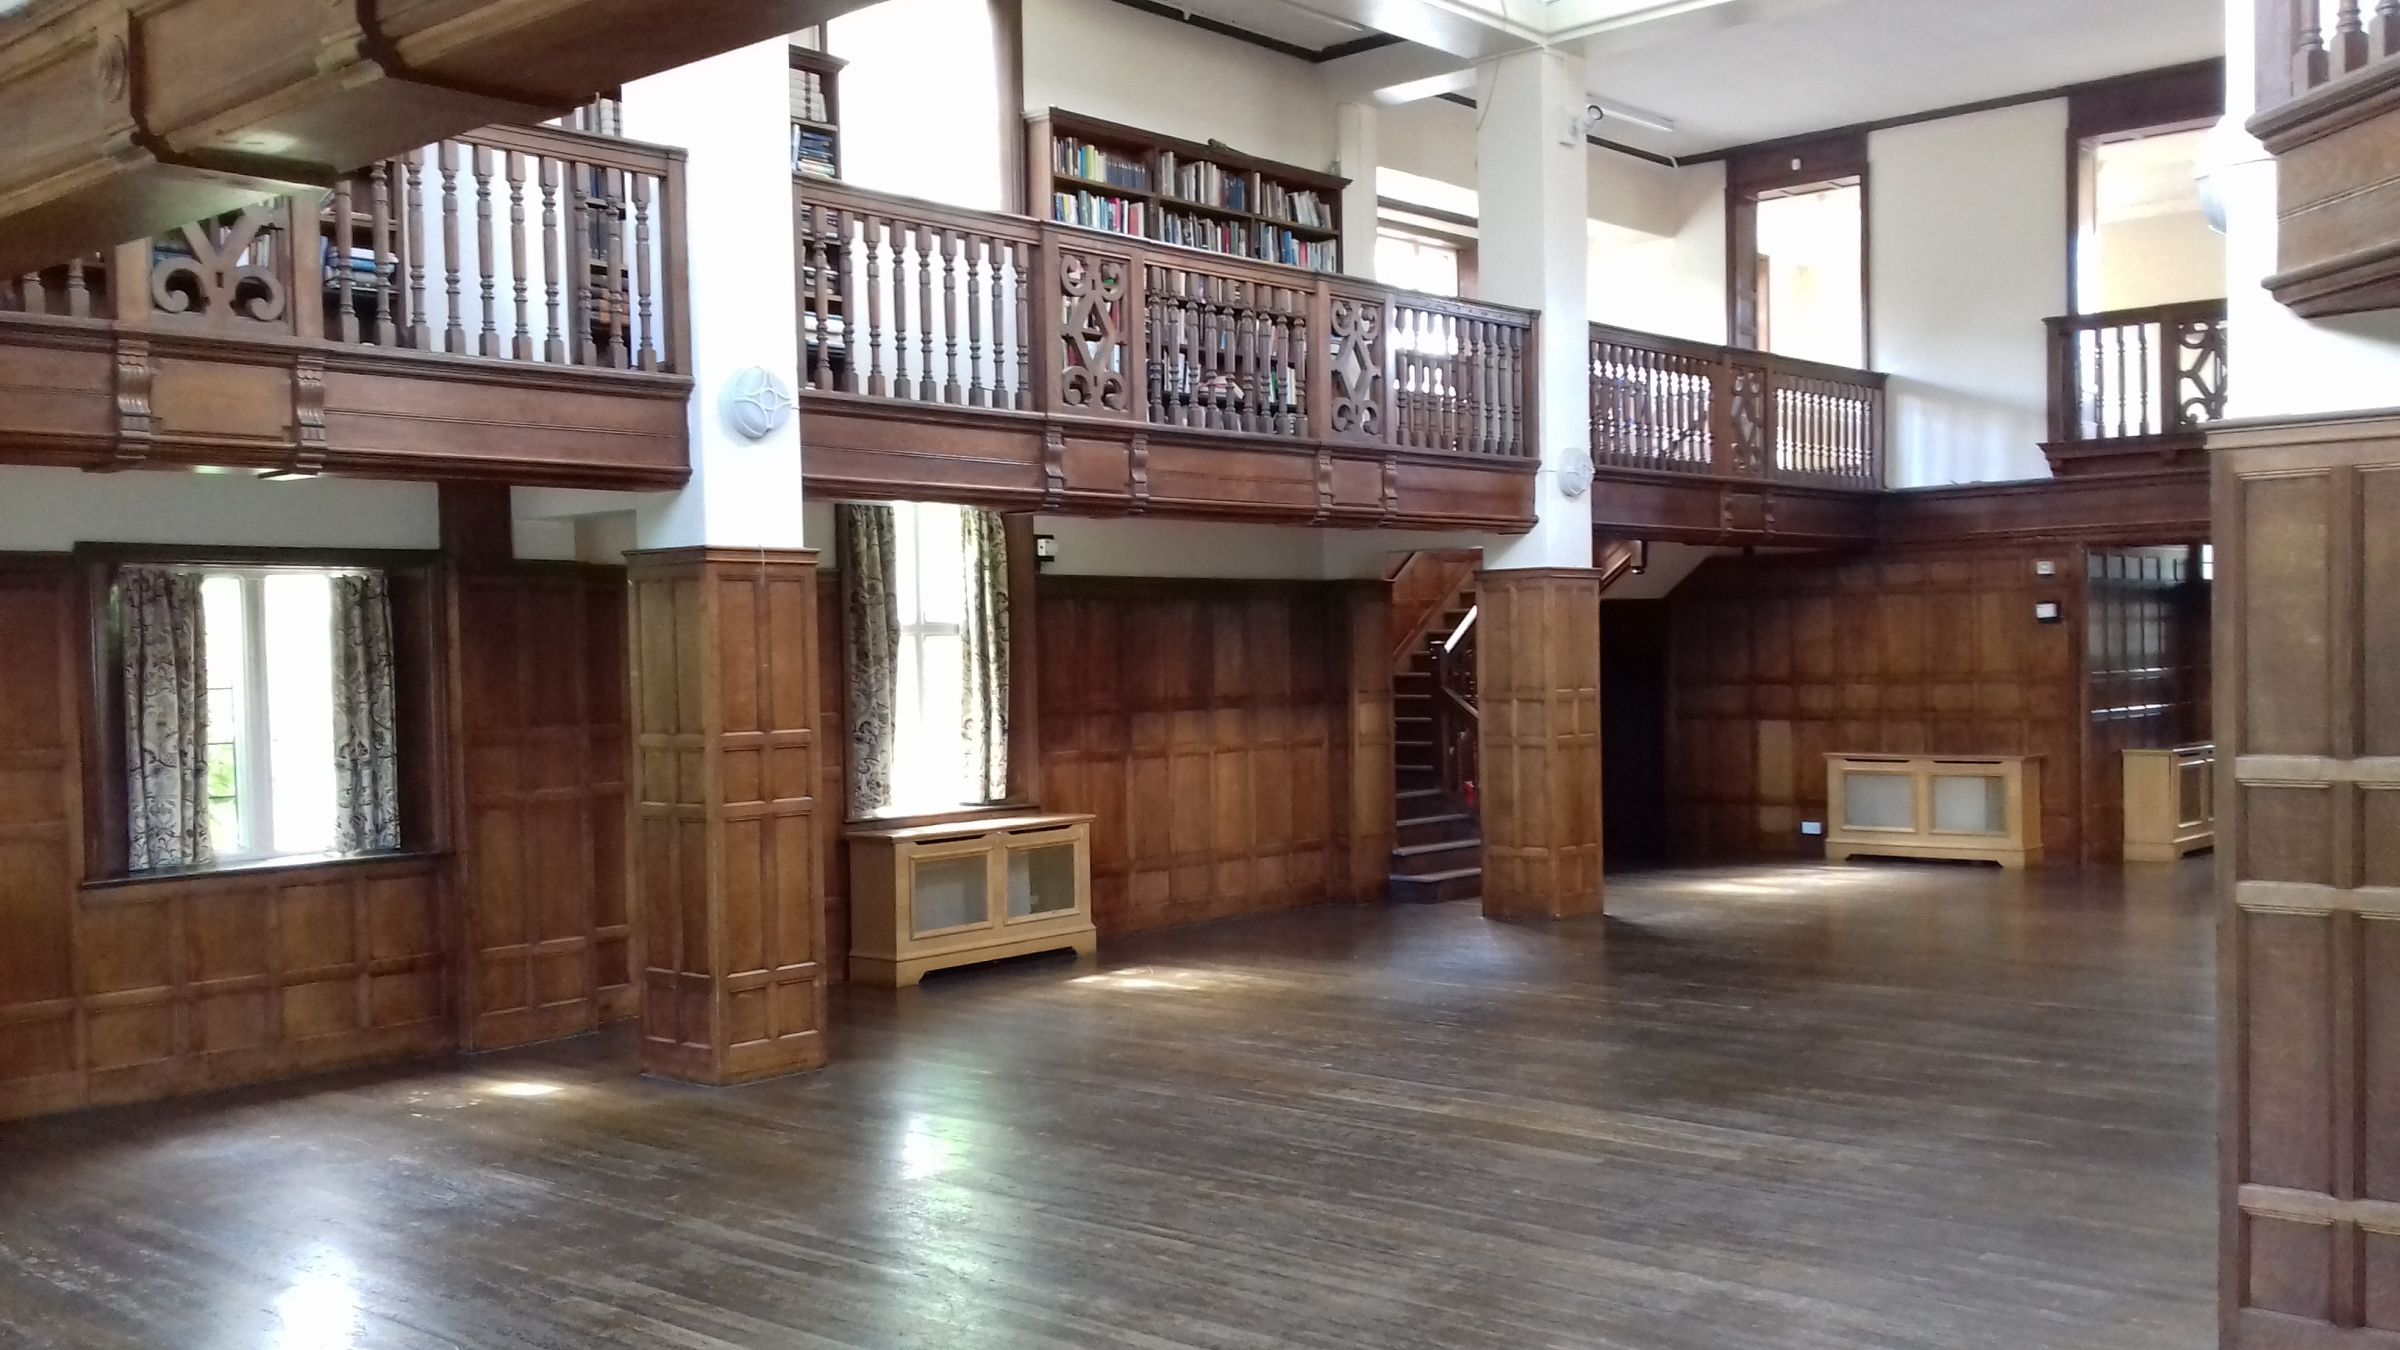 Interior of the old library at Charlton House